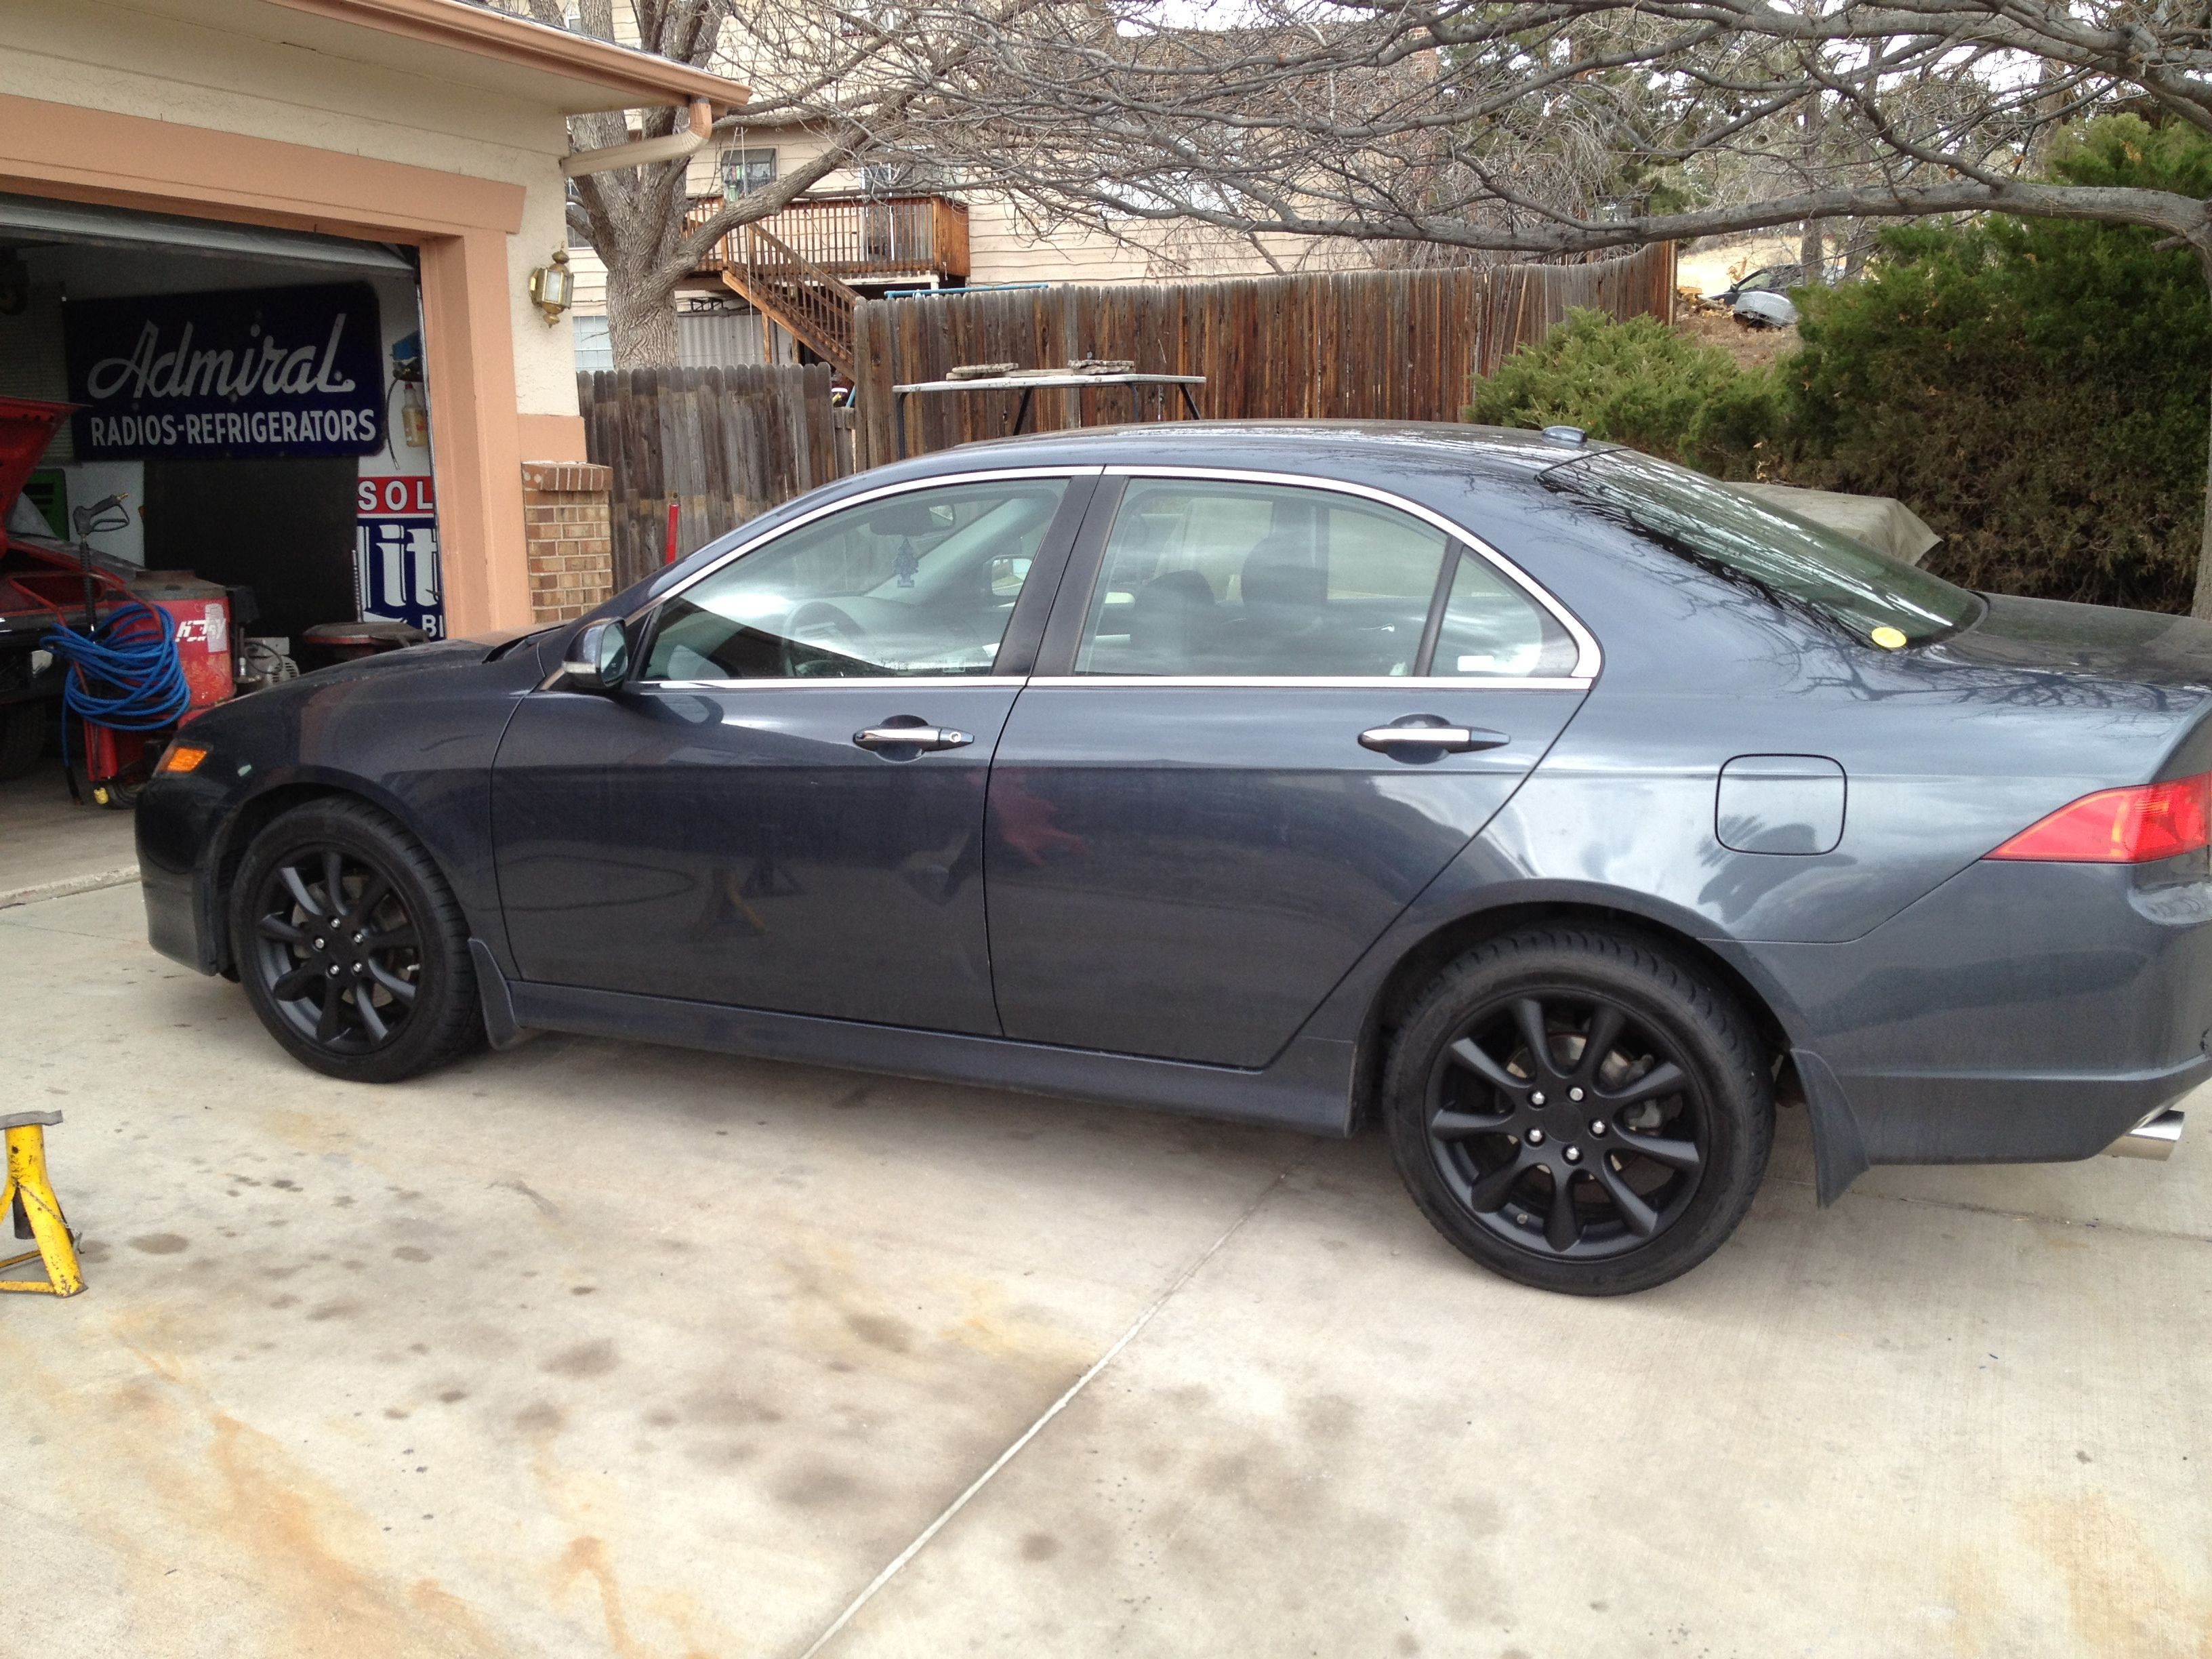 Acura tsx blacked out the rims